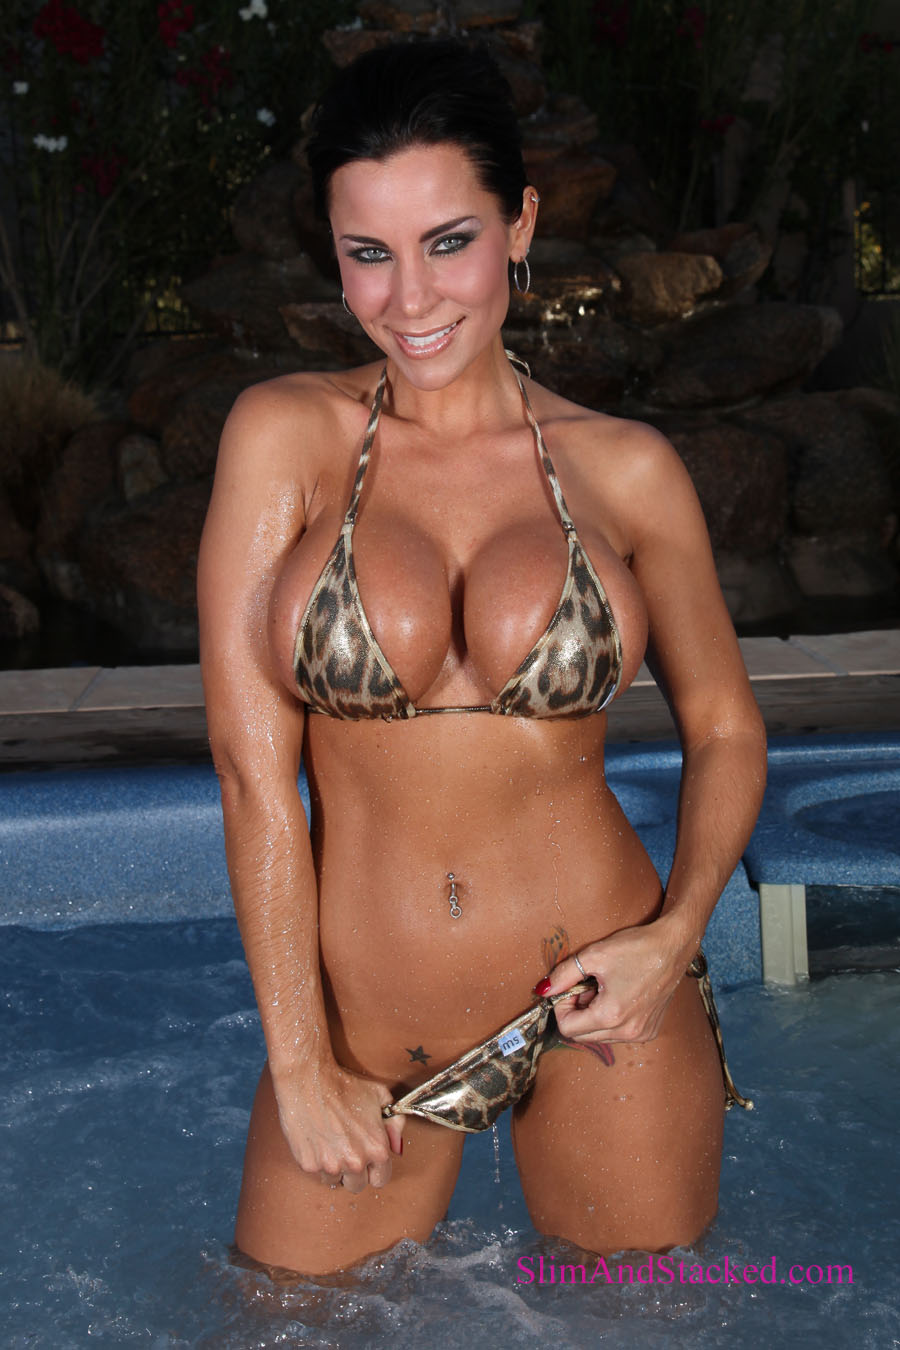 Laura Lee is wet and very wild in a tiny animal print bikini.  Get the entire set of ultra-high quality, 3000 pixel images.  Email dezertimagez@gmail.com for pricing.